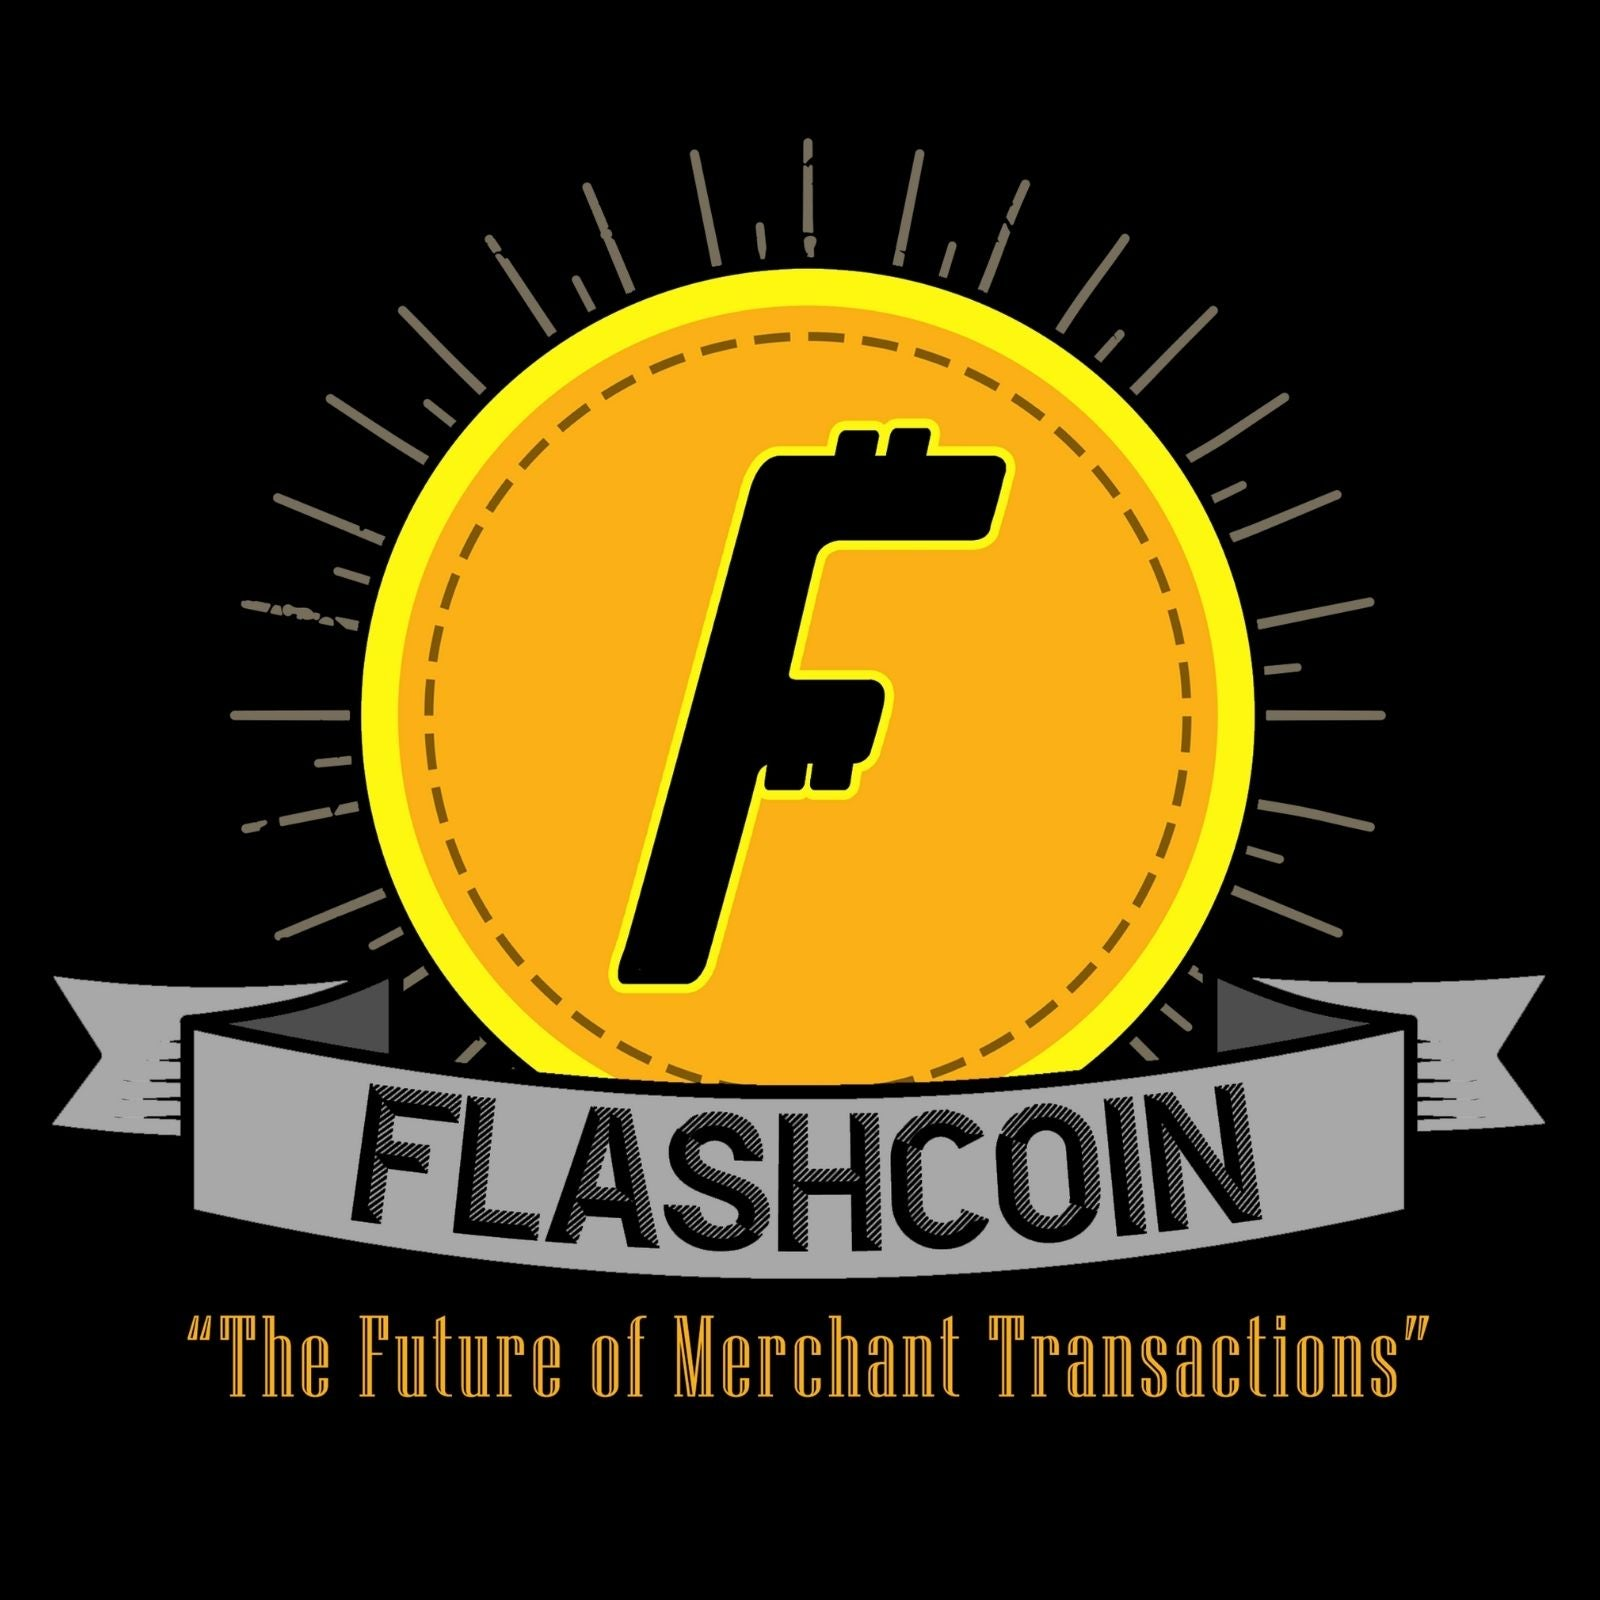 "Flashcoin ""The Future Of Merchant Transactions"" - Bastard Graphics"